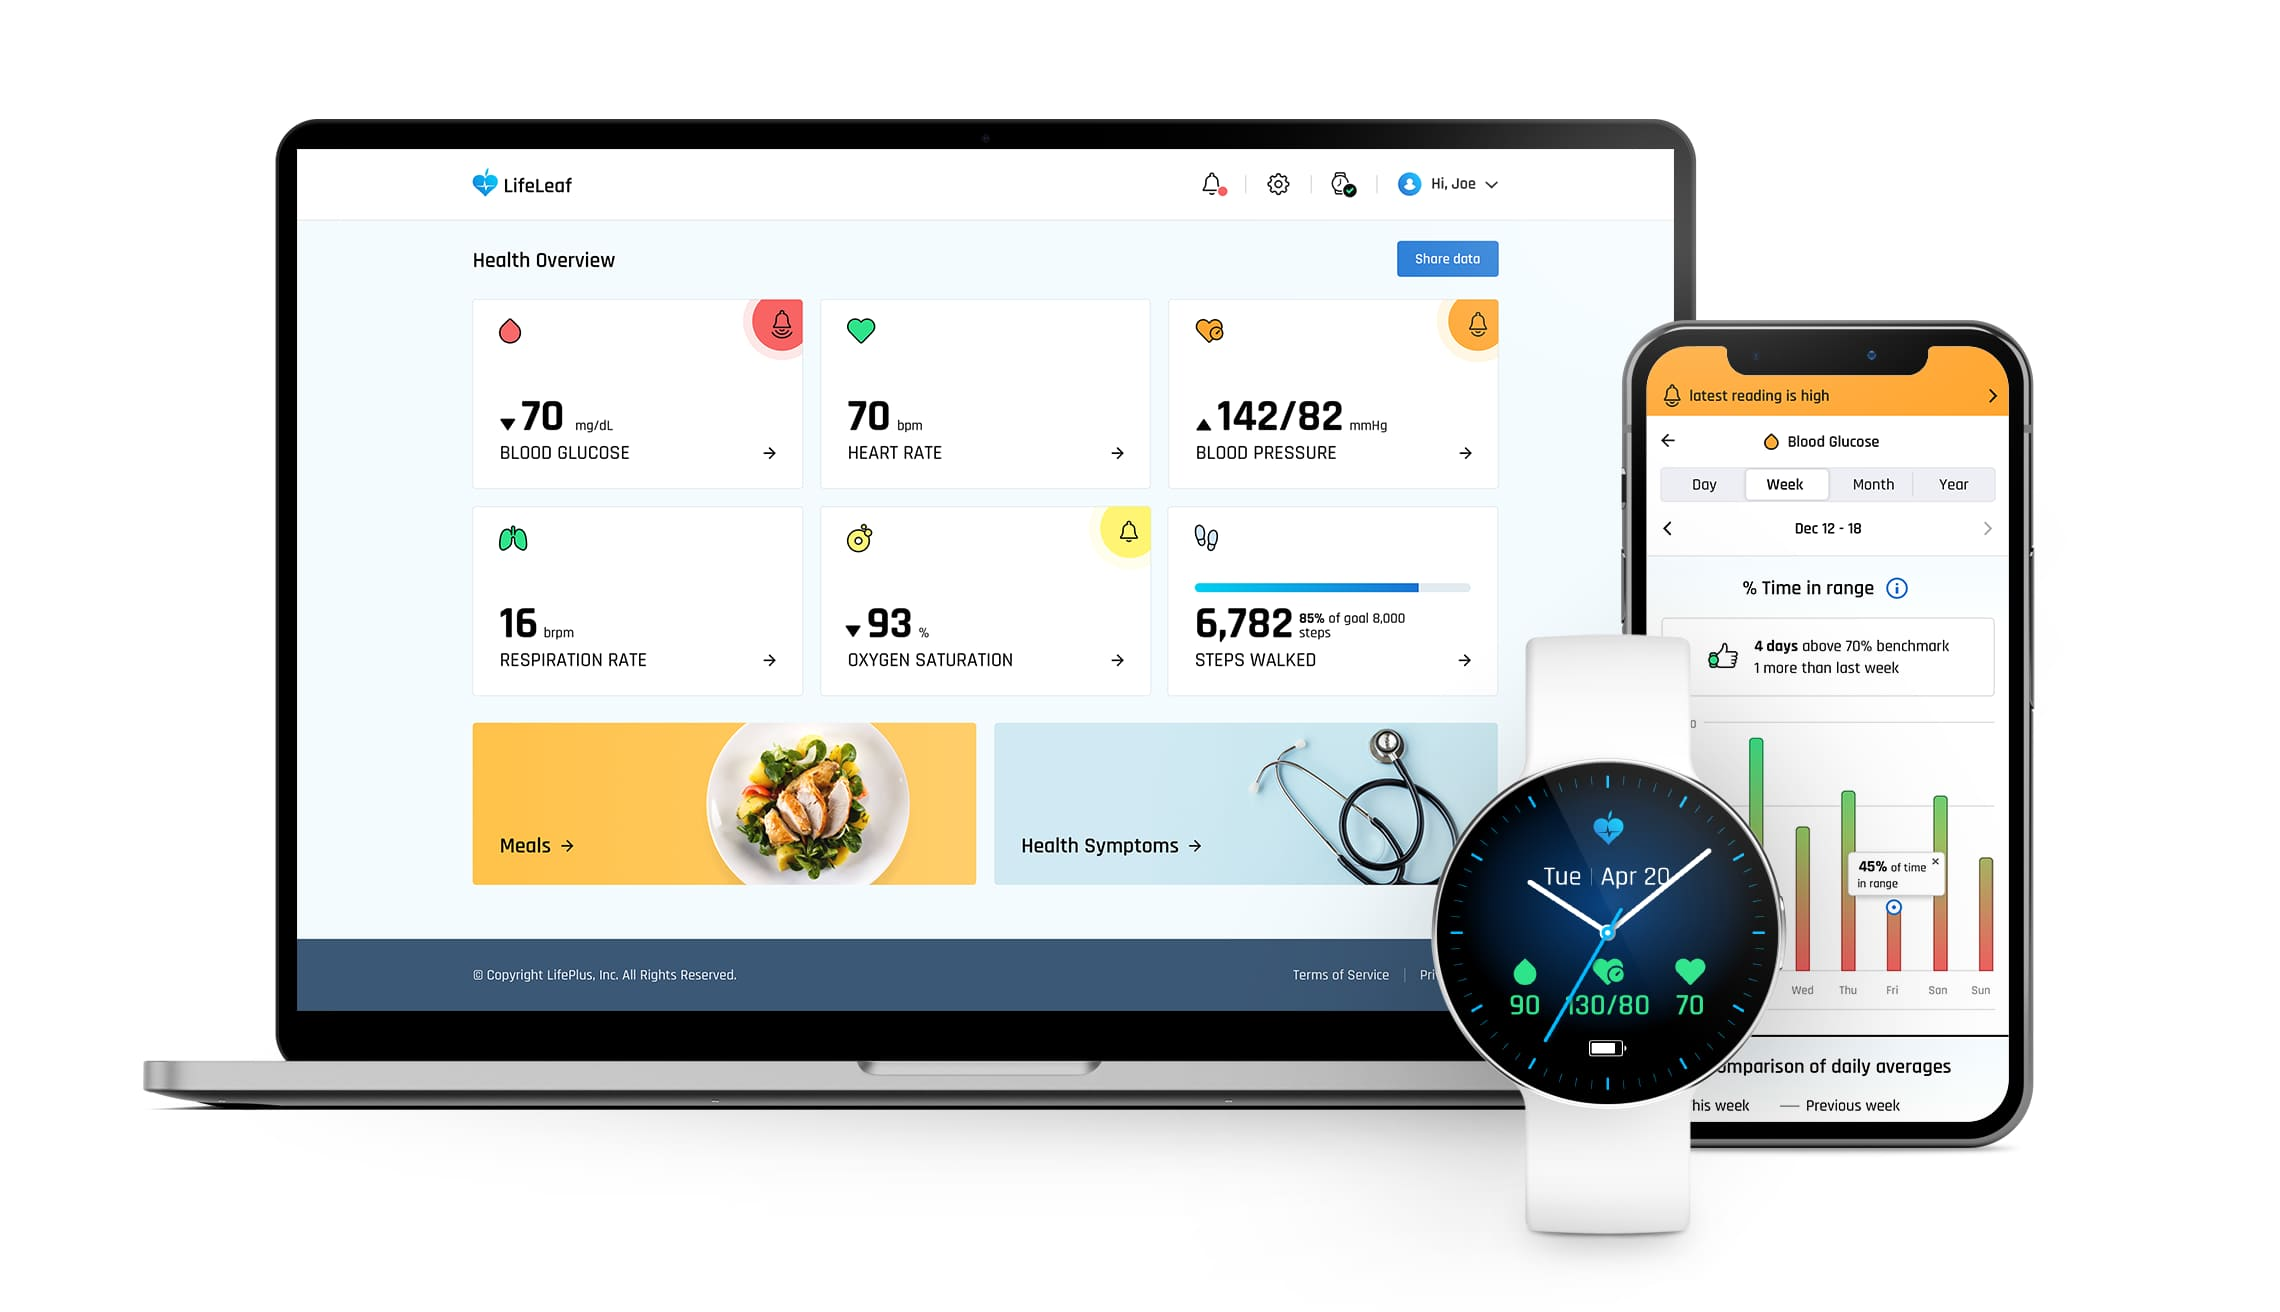 Composite showing LifeLeaf across various platforms - desktop, mobile, and watch.